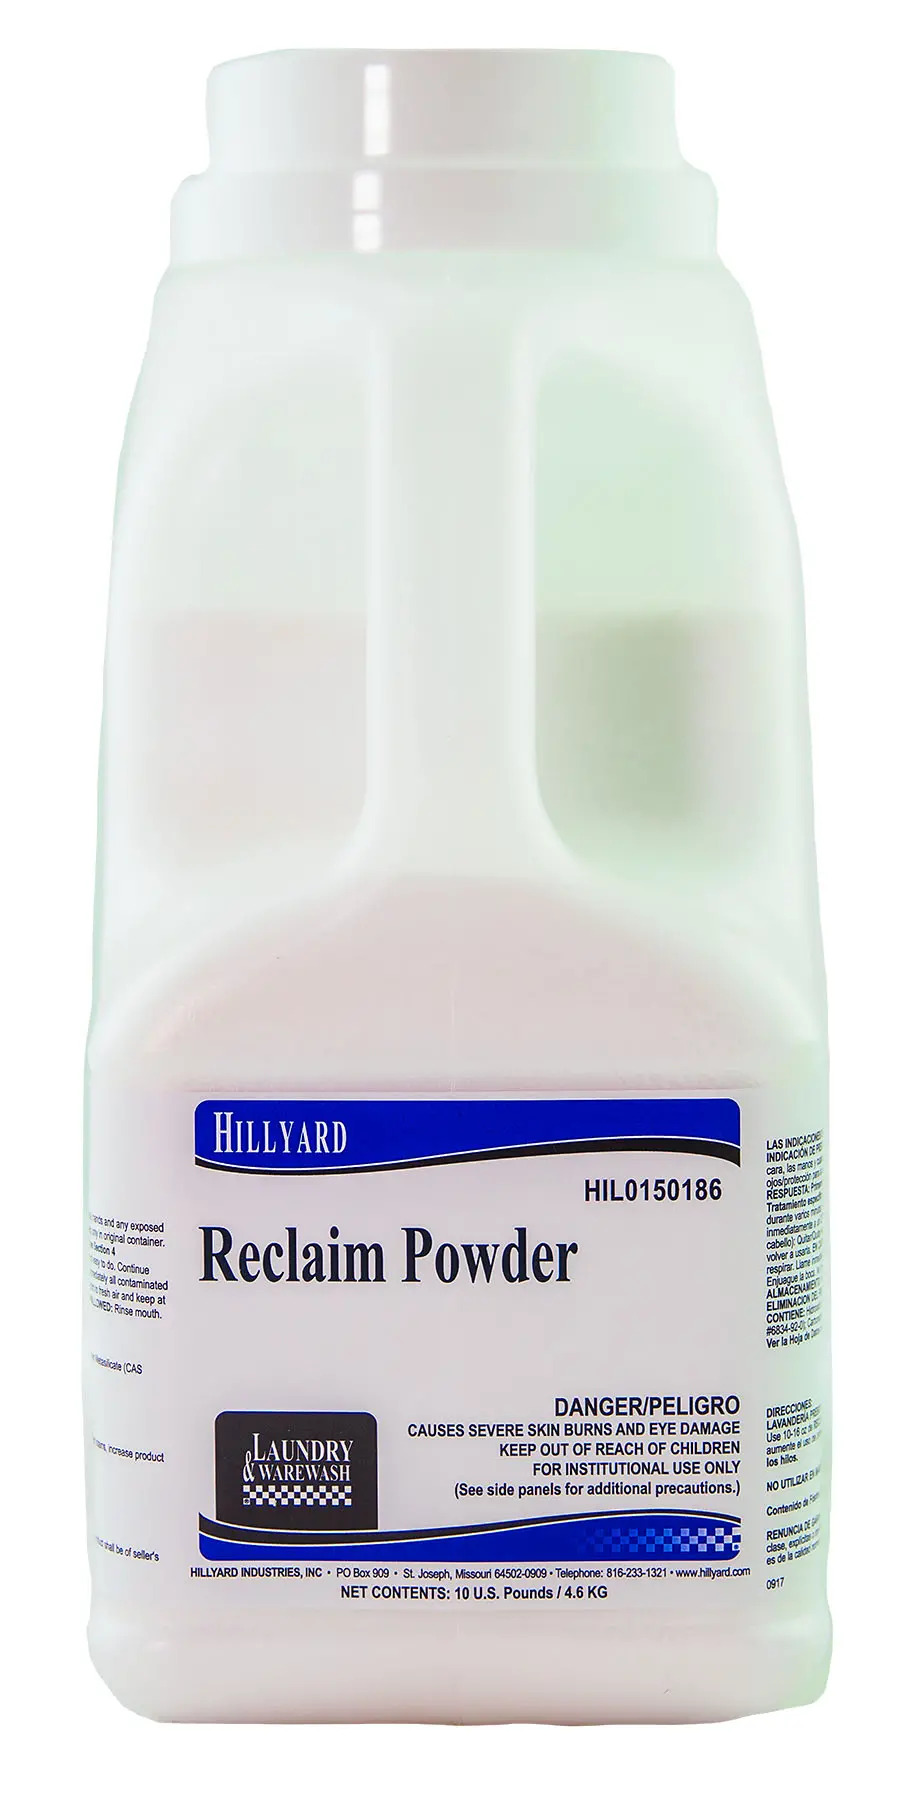 Reclaim Powder